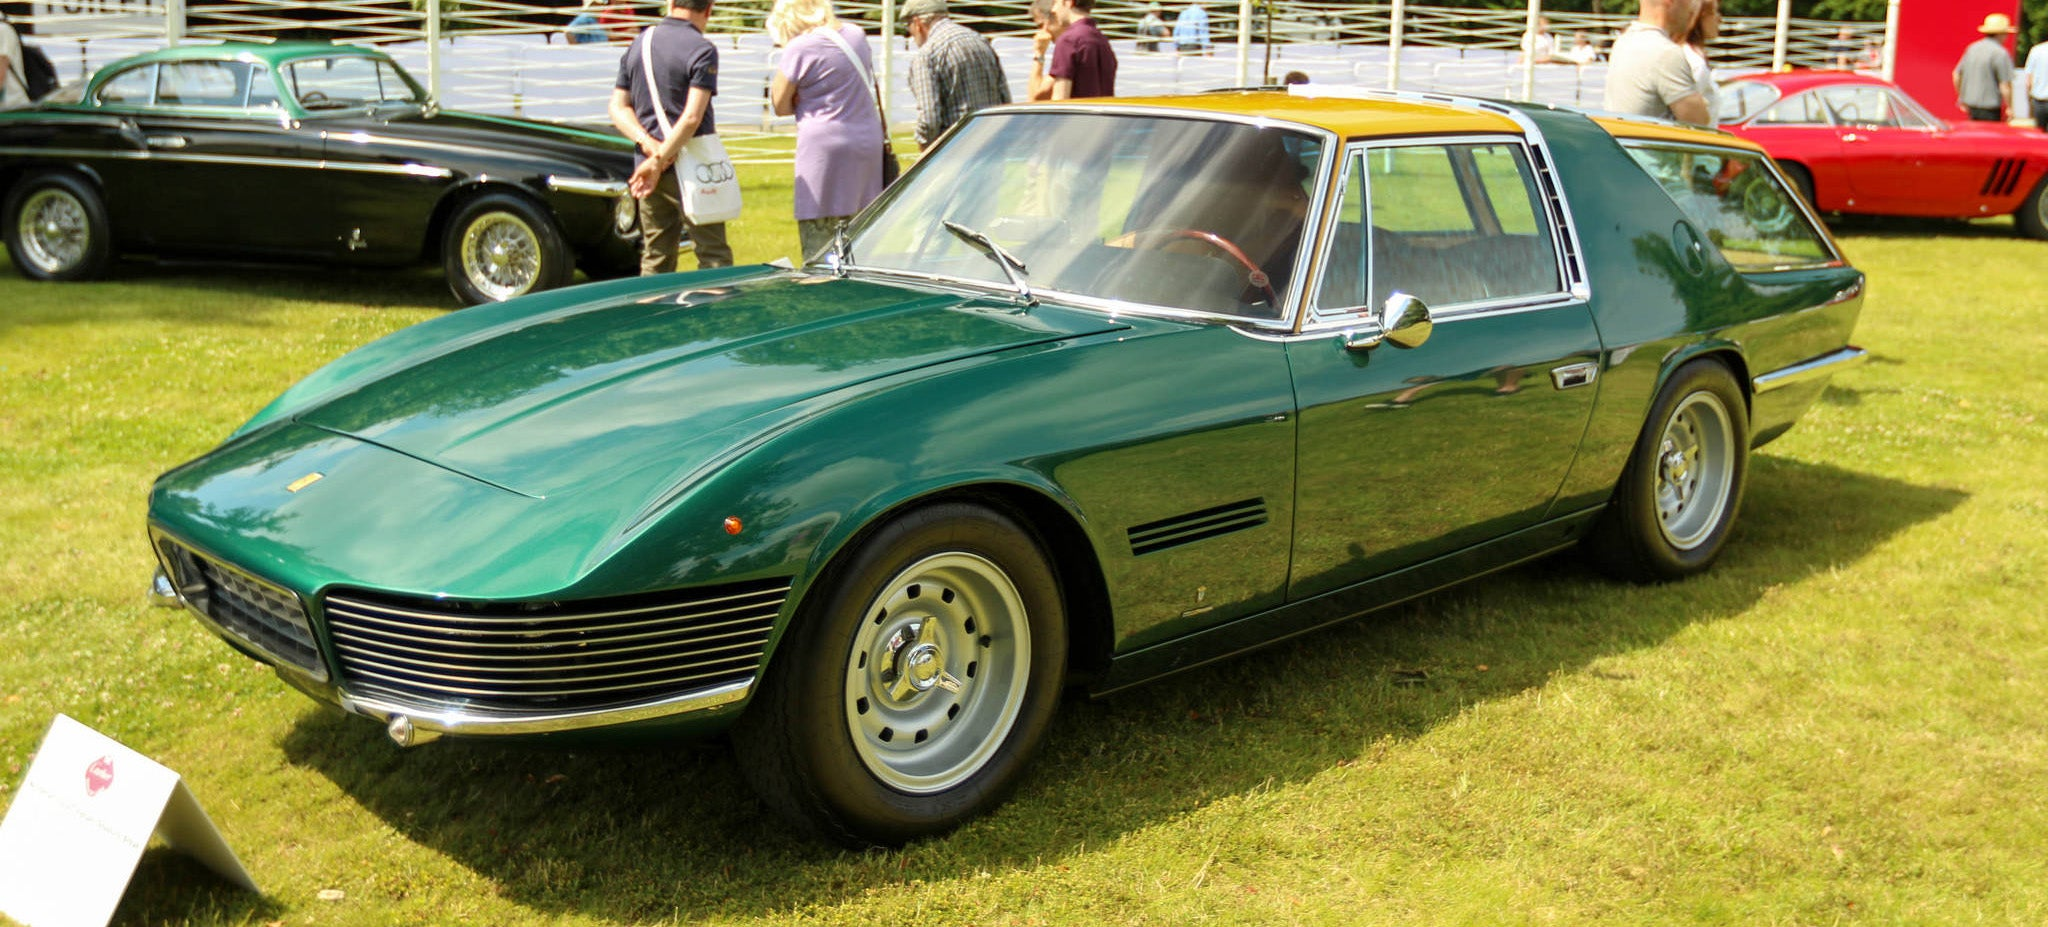 jay kay is selling his weird green ferrari because his garage is so full rh jalopnik com jay kay car collection youtube